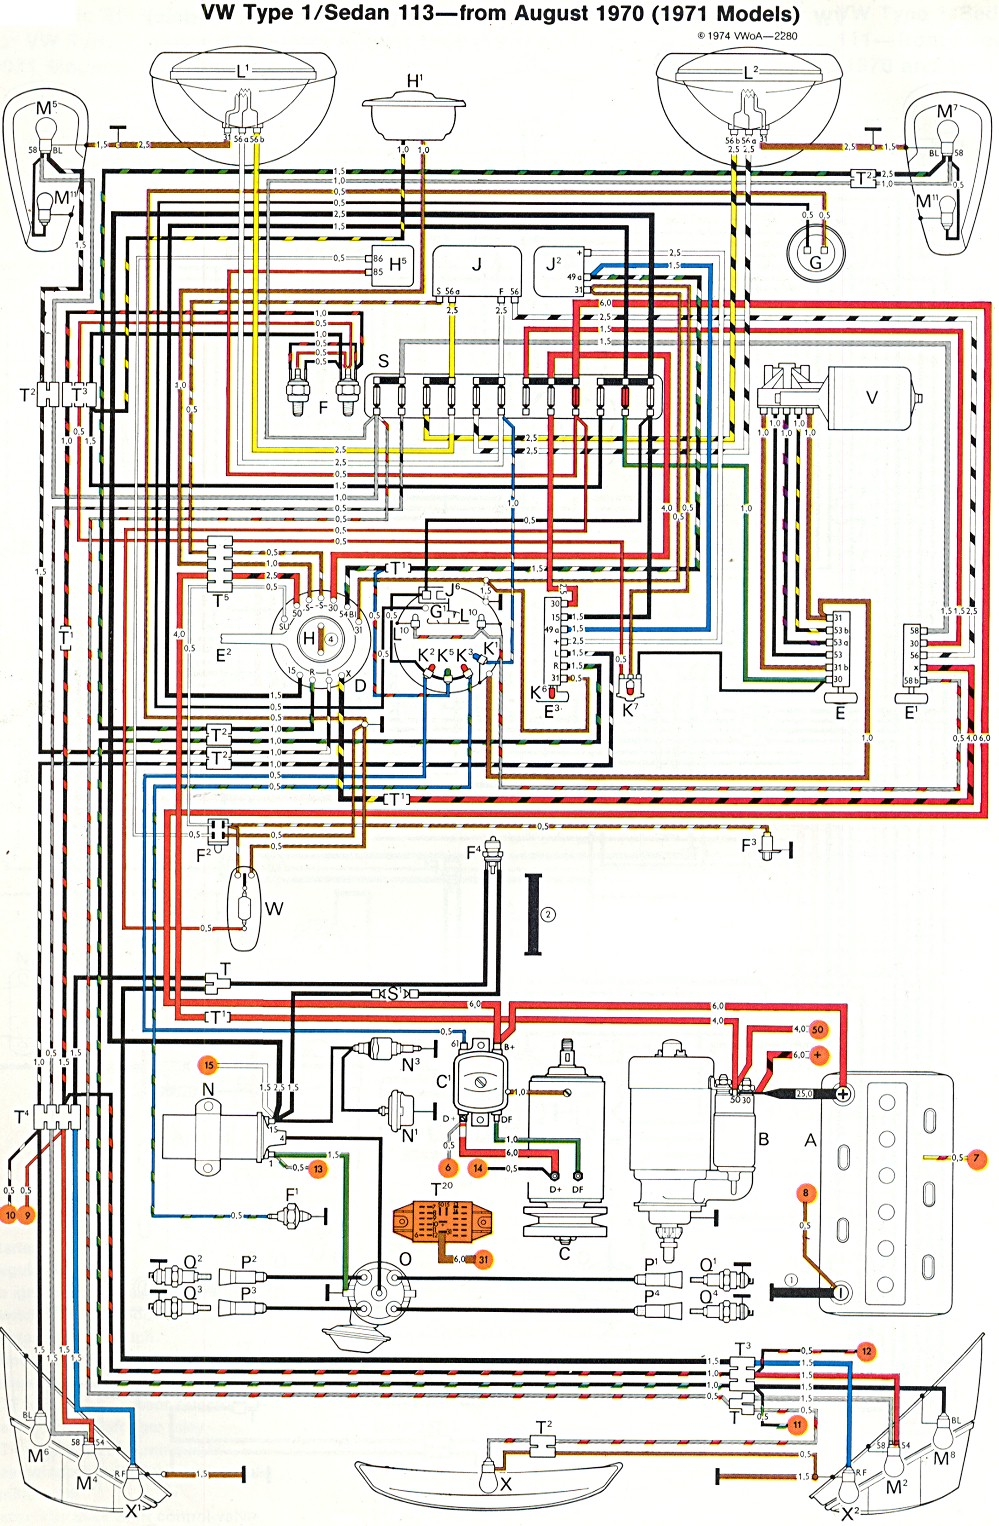 medium resolution of 1971 super beetle wiring diagram thegoldenbug com 1973 vw wiring diagram